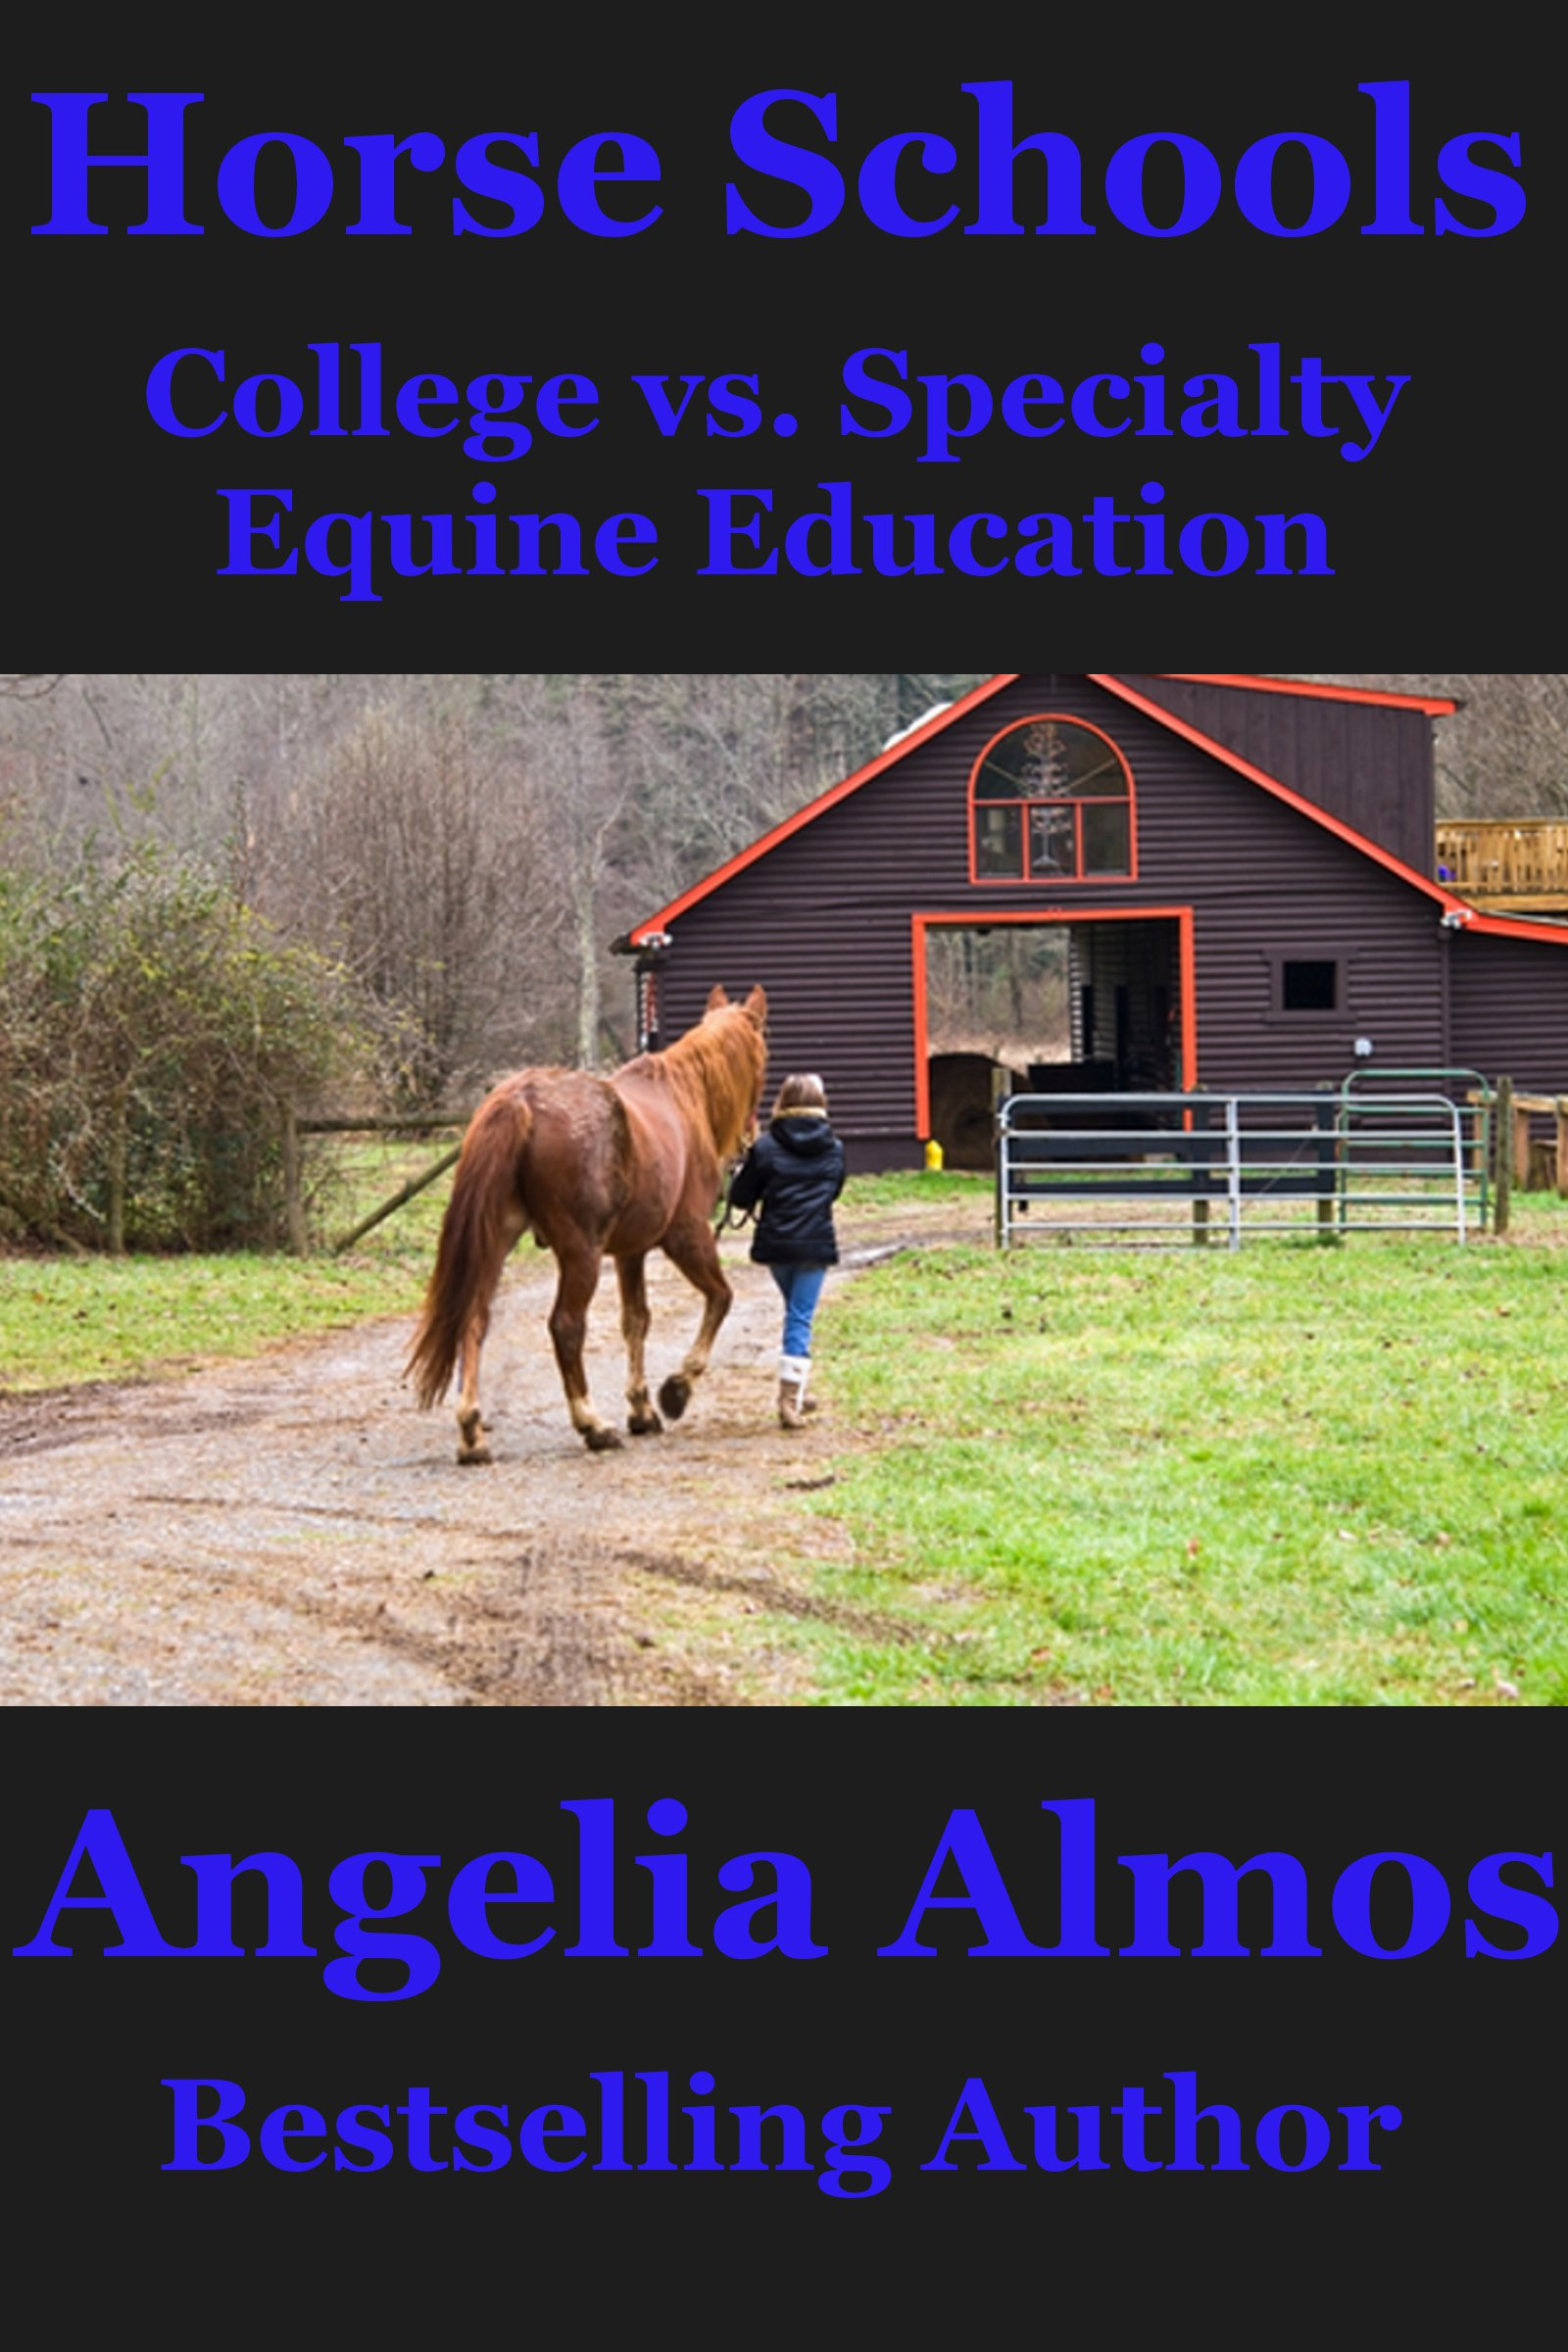 Horse Schools: College vs. Specialty Equine Education